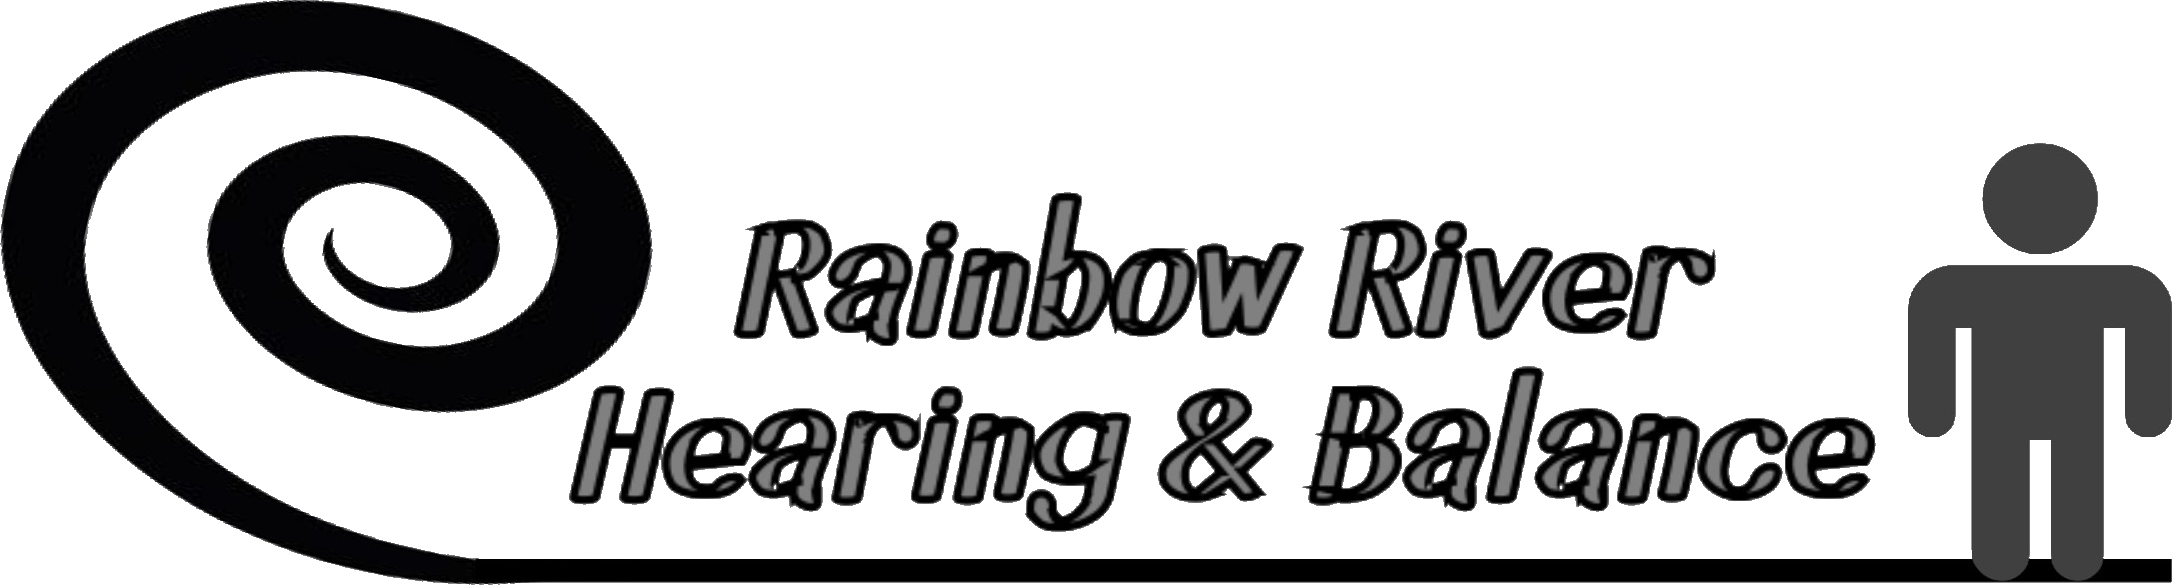 Rainbow River Hearing & Balance